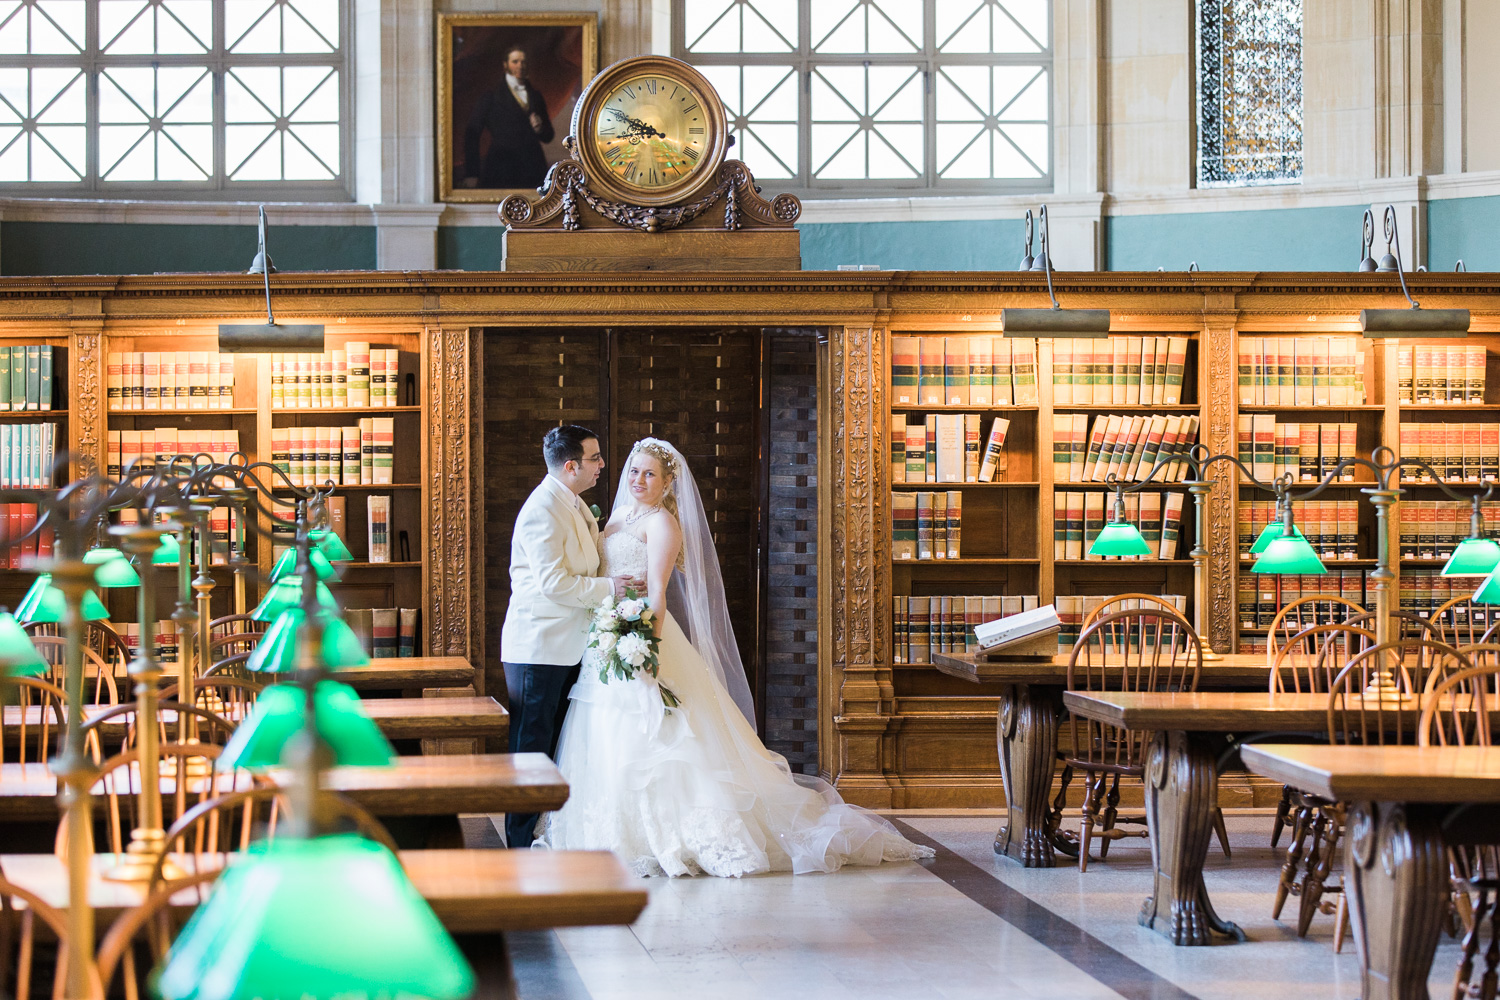 Boston Public Library Wedding.Nicole David Elm Bank And Boston Public Library Wedding